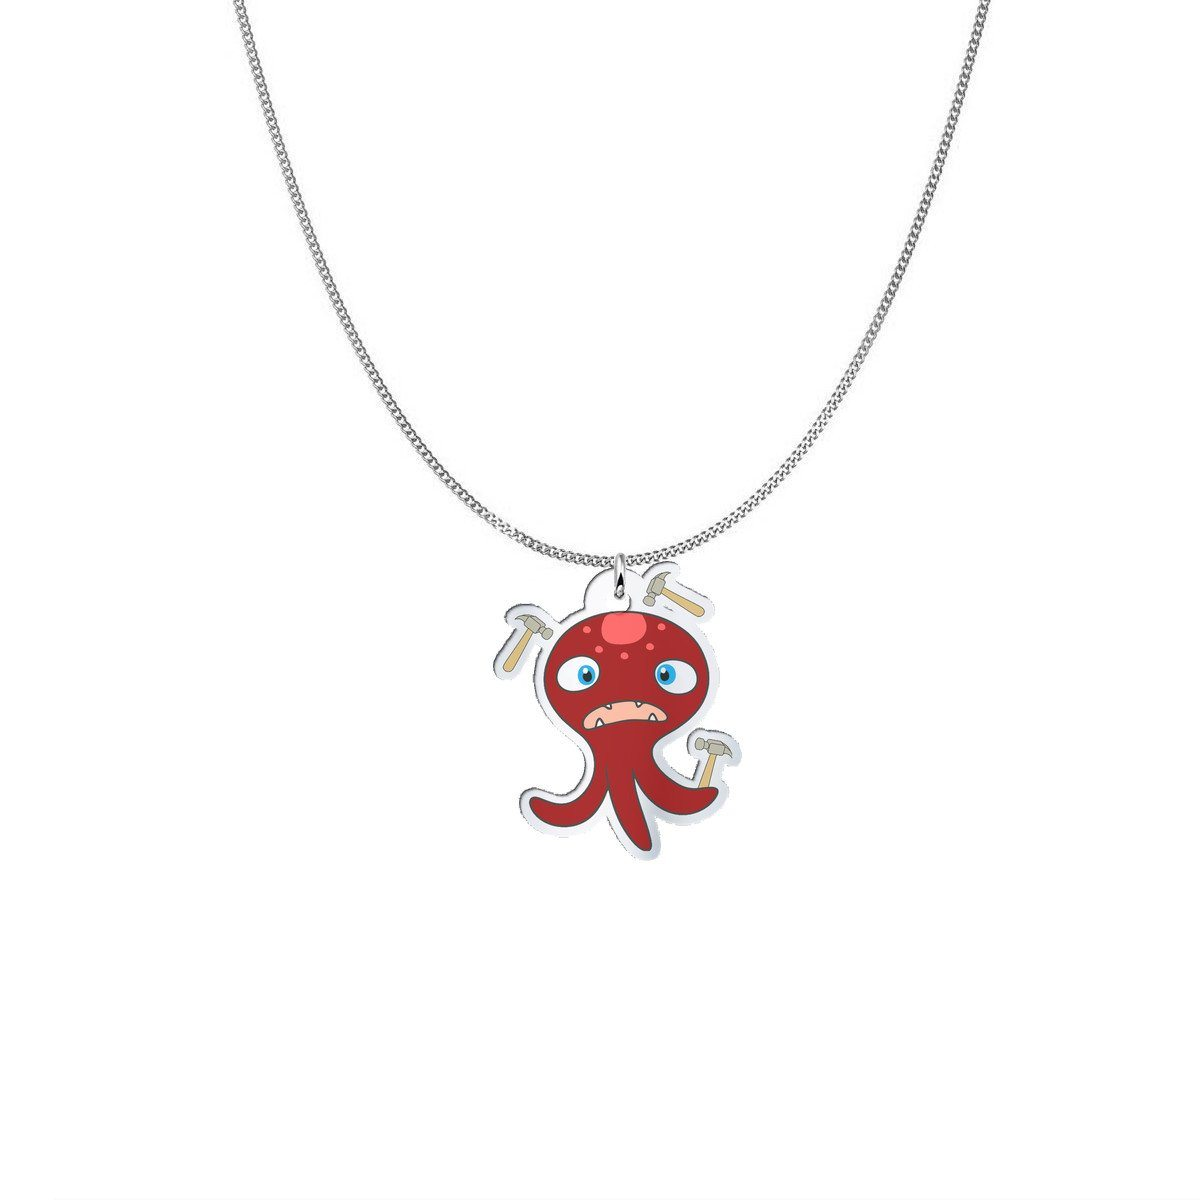 Pod the Migraine Monster Silver Necklace - The Unchargeables